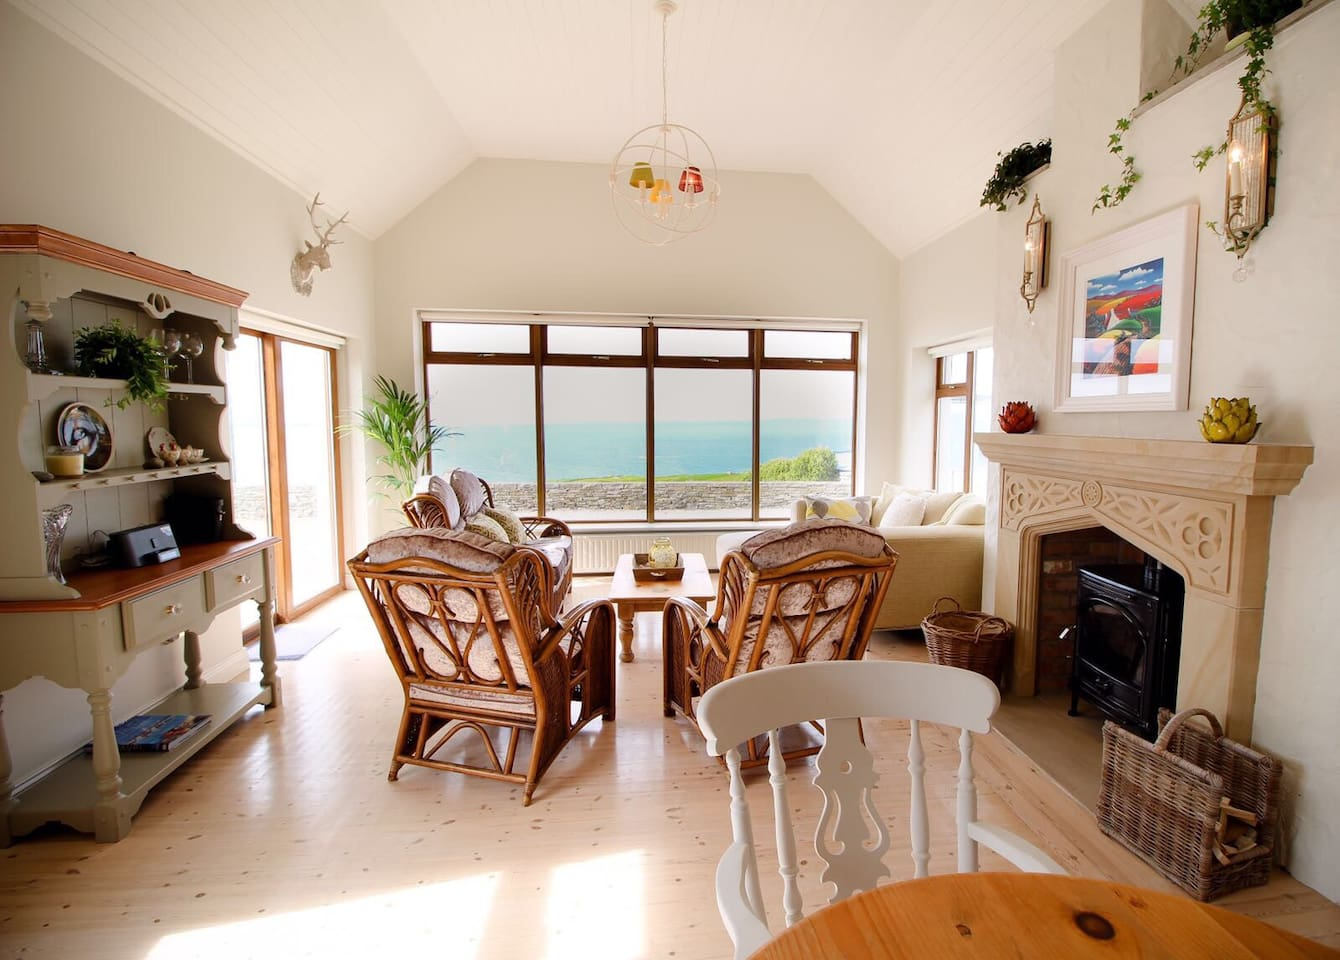 The living area with Views over the Aran Island